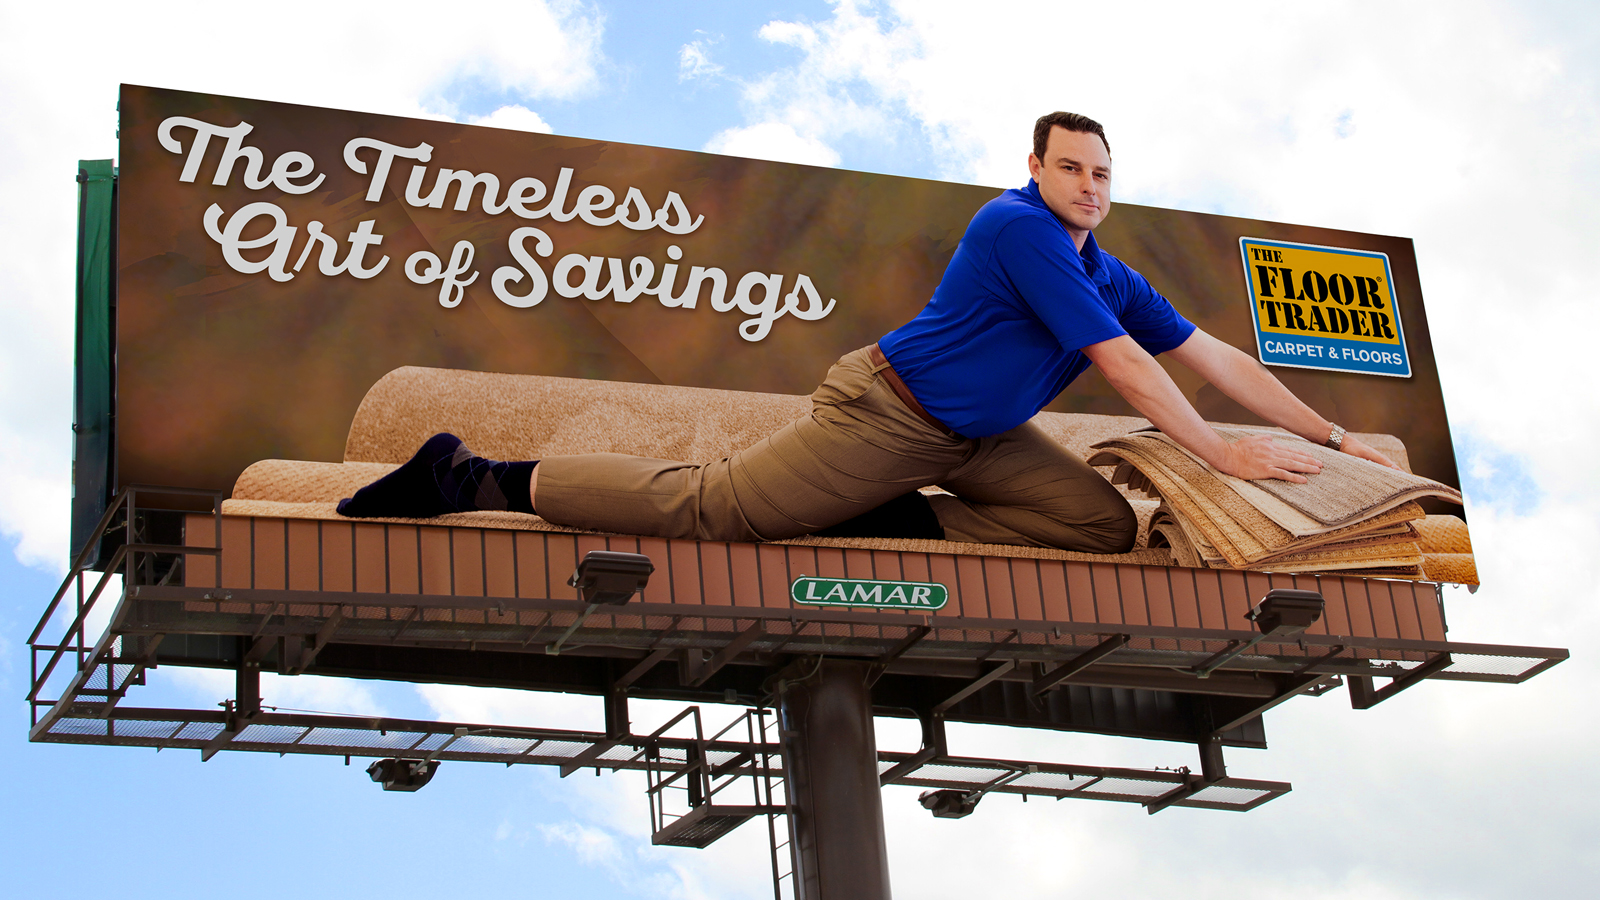 Seinfeld-inspired billboard advertisement for The Floor Trader went viral